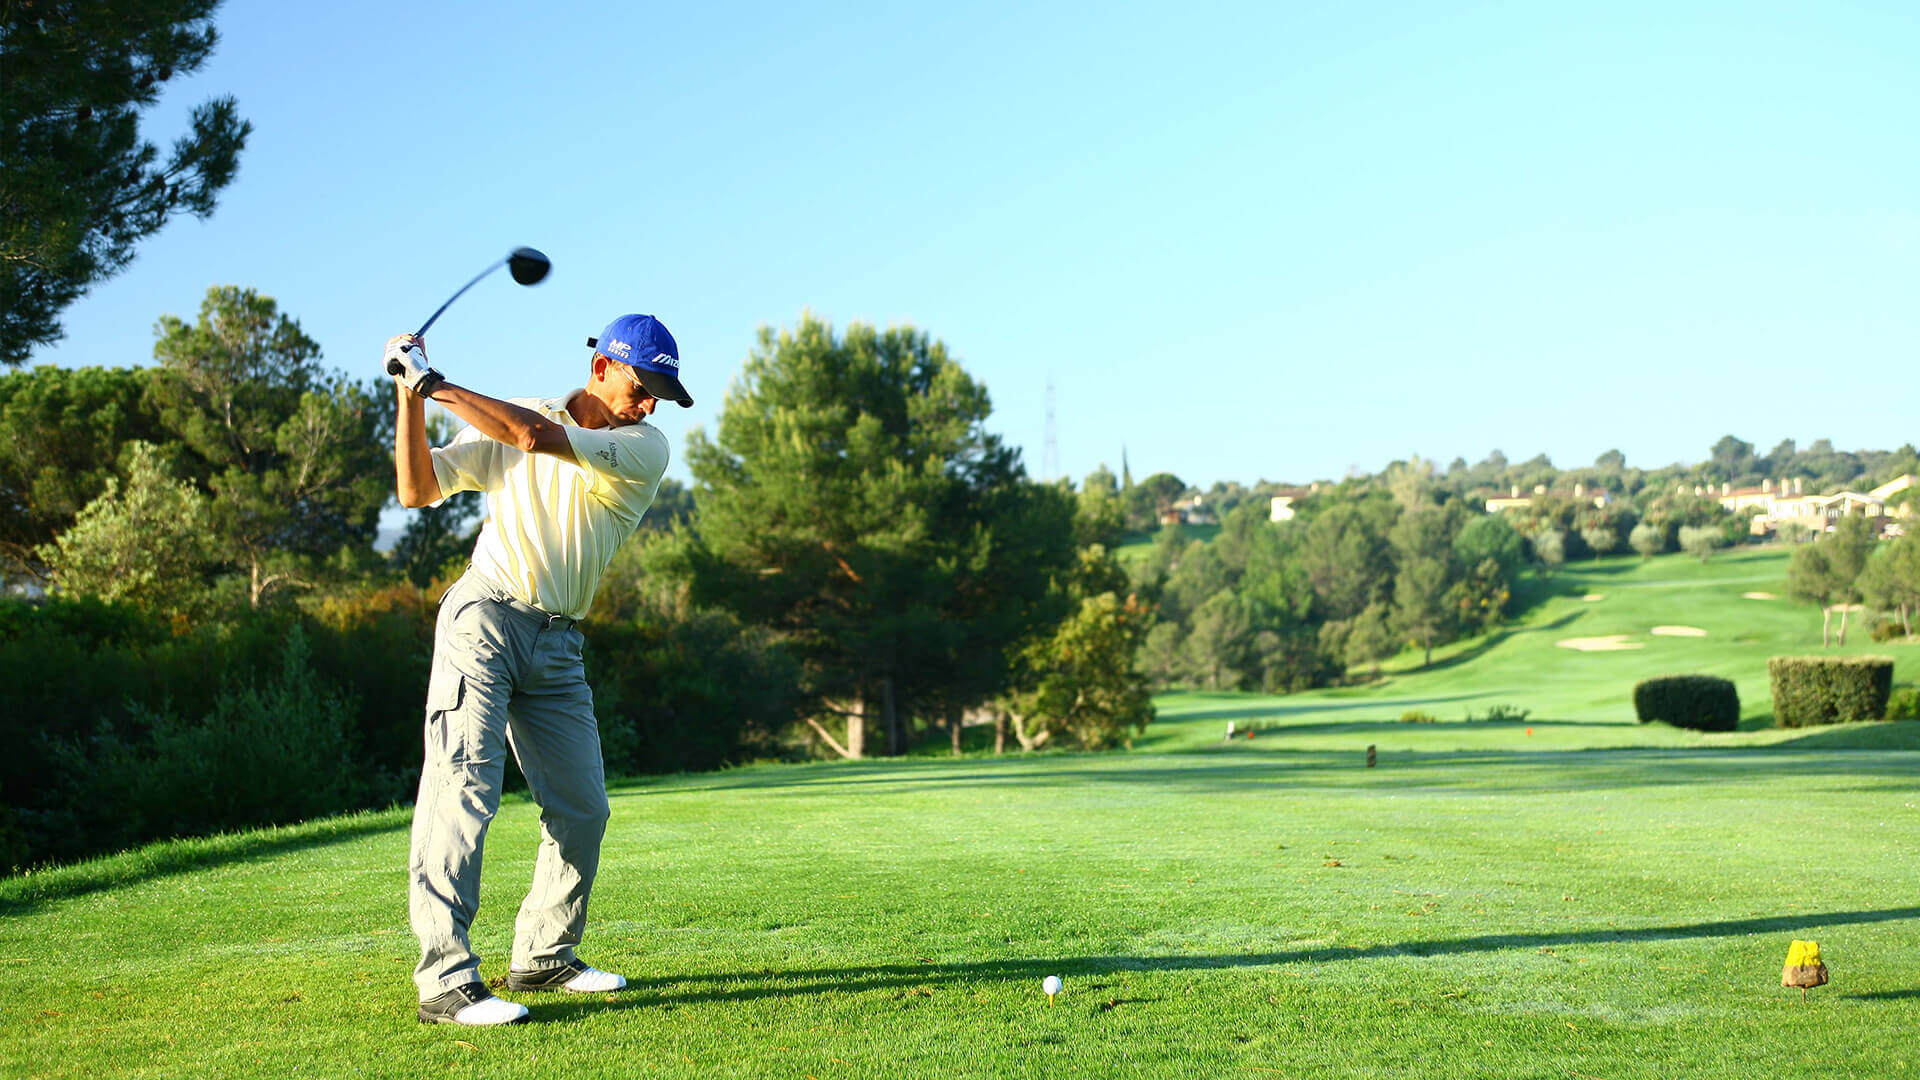 Provence golf and Spa golfer on golf course